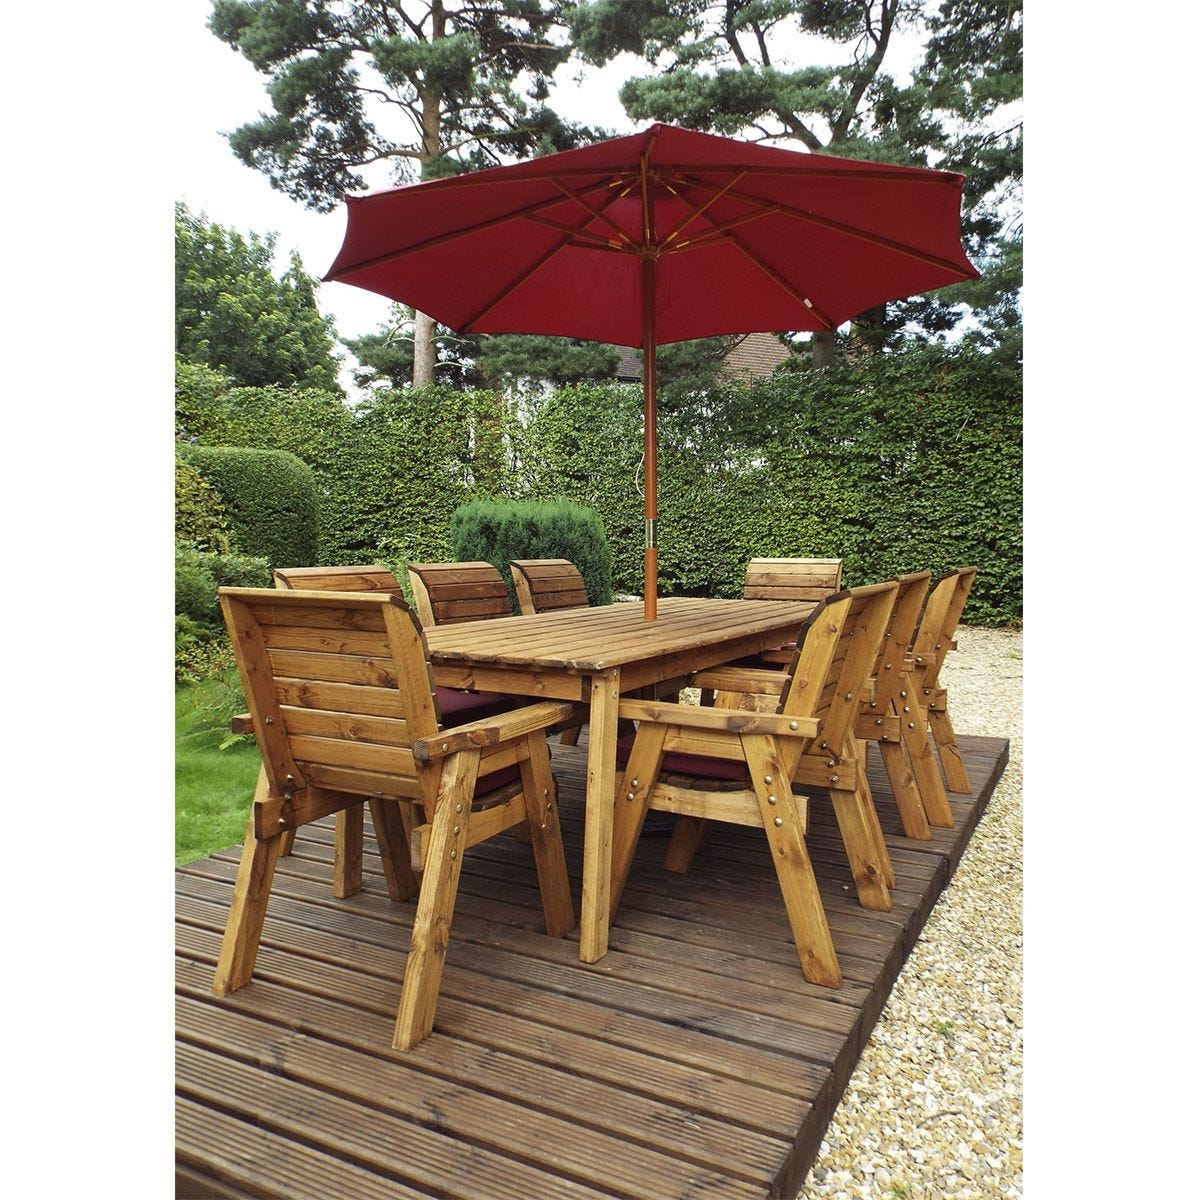 Charles Taylor 8 Seater Rectangular Table Set with Burgundy Cushions, Storage Bag, Parasol and Base